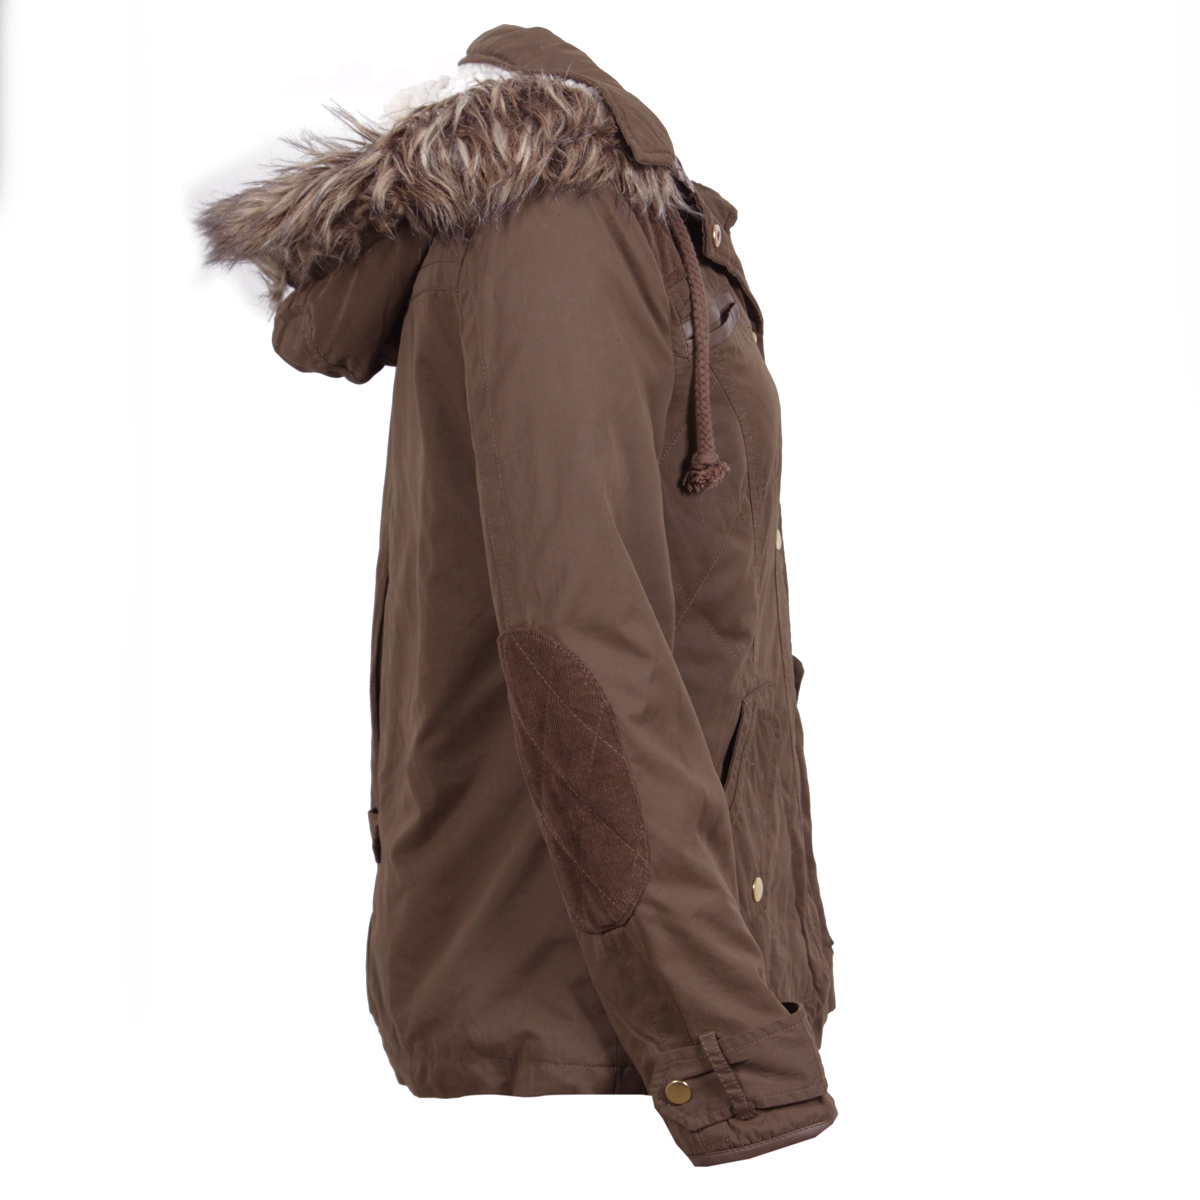 See Urban Outfitters' selection of women's winter coats and jackets. Pick from the collection of puffer and bomber jackets, parkas, anoraks and overcoats. Women's Coats & Jackets Urban Renewal Vintage Remnants Brown Cow Faux Fur Jacket.